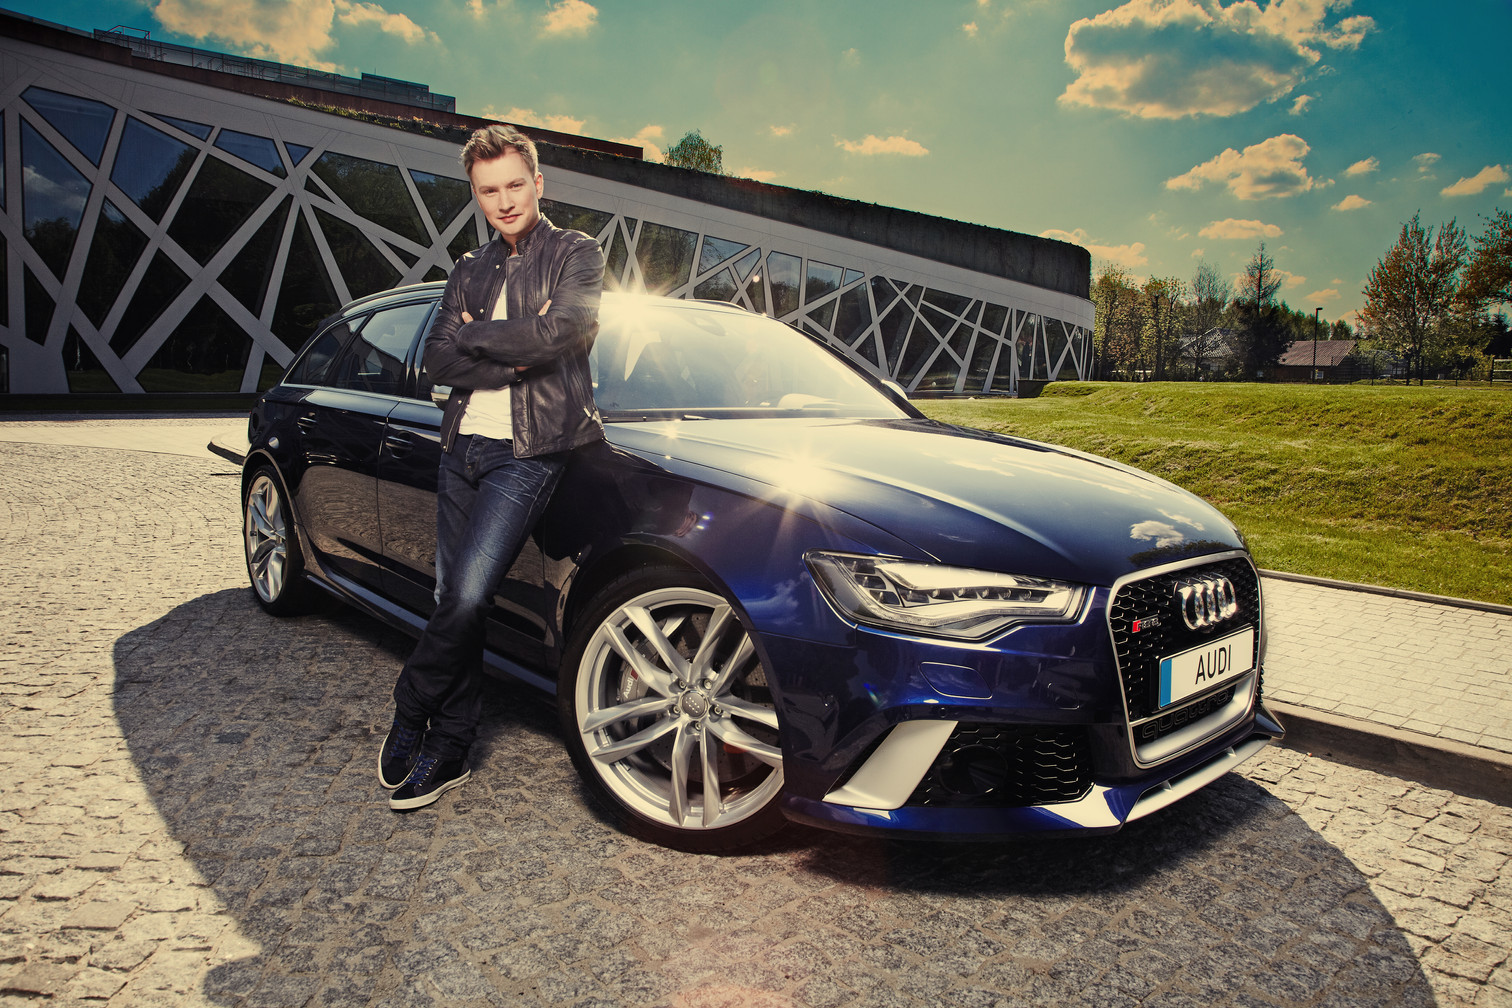 Autorski projekt marketingowy dla marki Audi